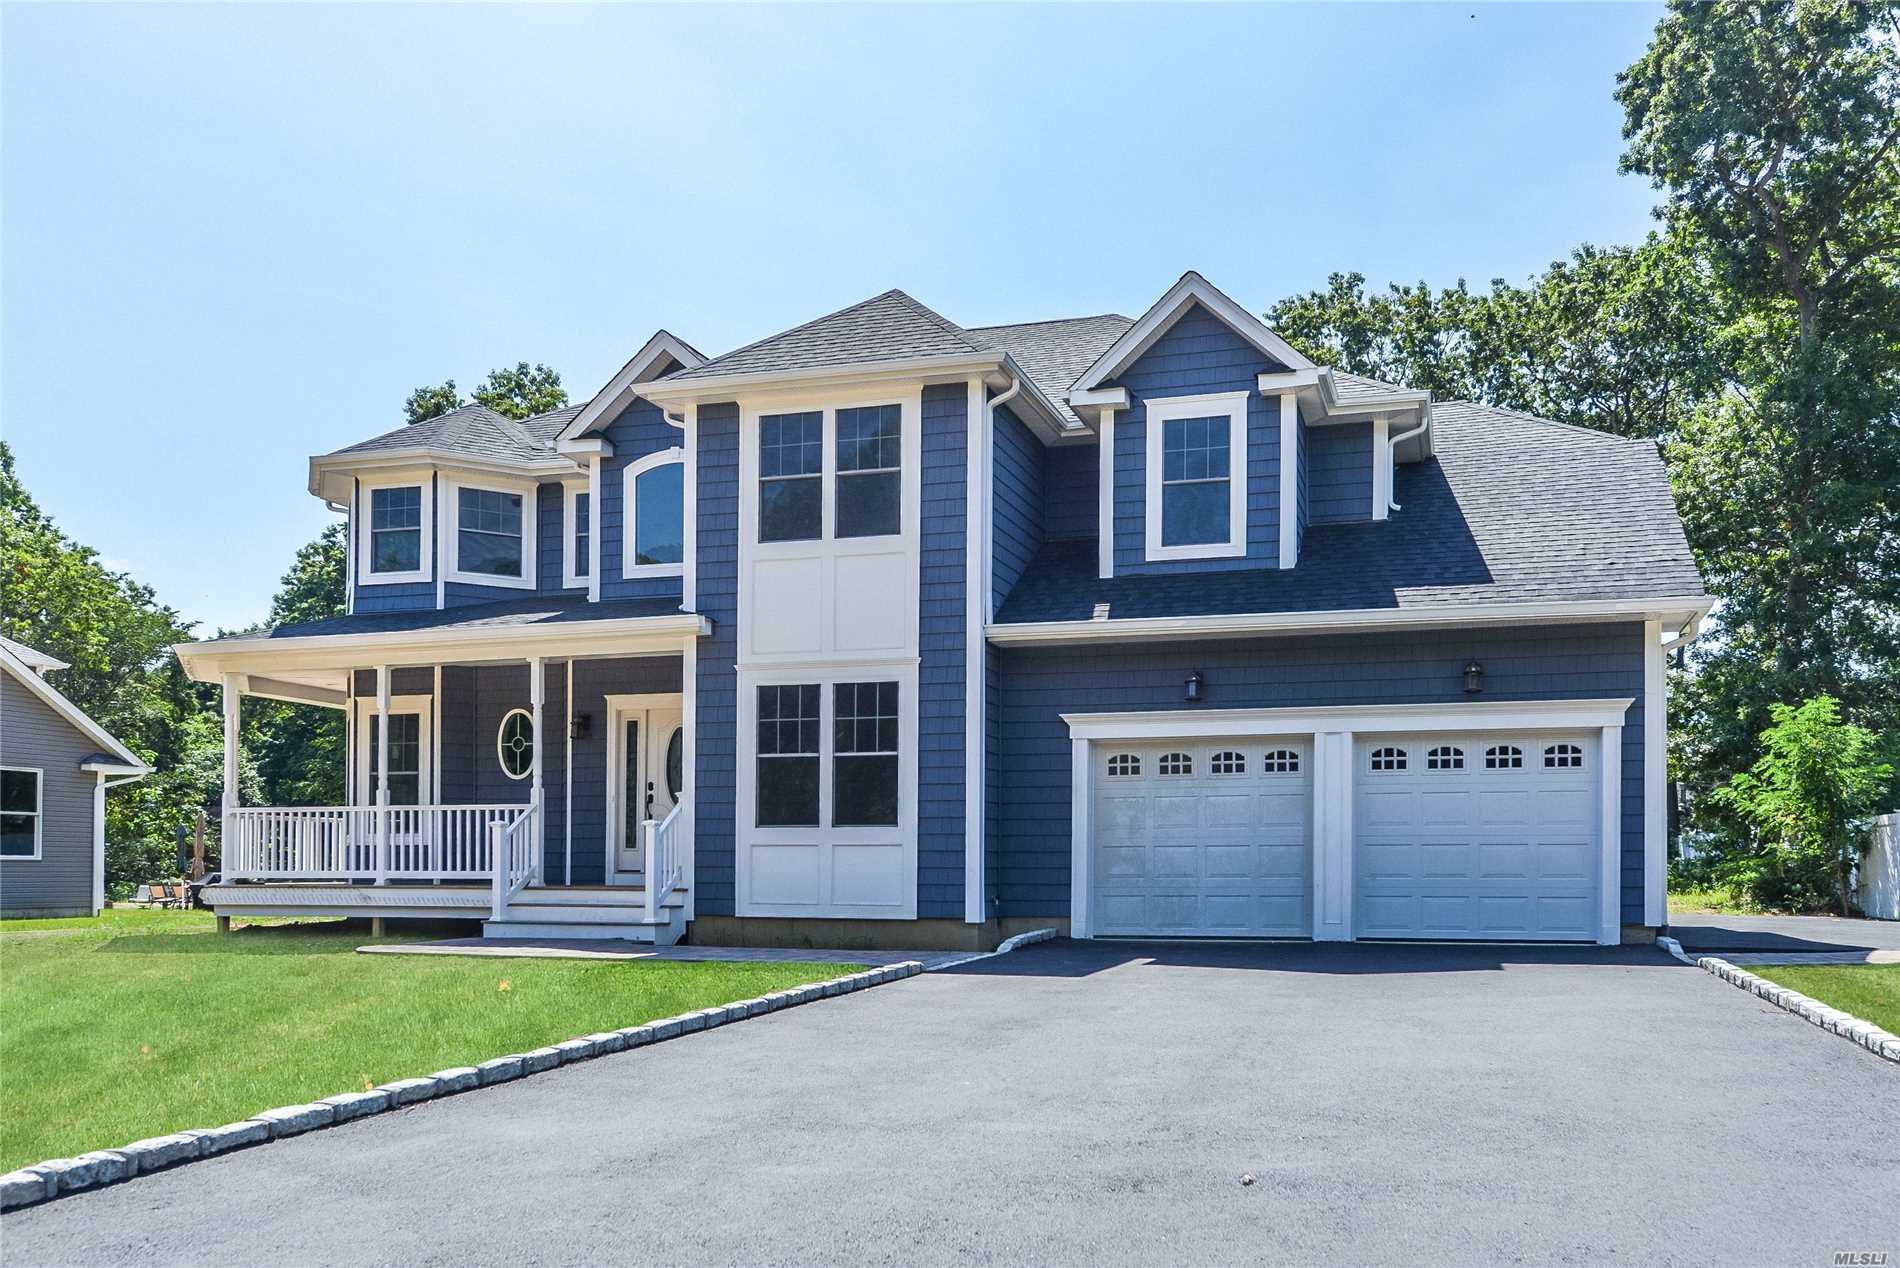 New Construction Located On A Cul De Sac In A Desirable Neighborhood! Photos Are Of A Similar Model. This Model Is Up, And Ready For A Quick Delivery! Master W/Bath + 3 Addl Bedrooms, Eik, Frml Dr, Butler Pantry, Flr, Oak Floors, Office, Wrap Around Porch, 2 Car Garage! On 1.19 Acre! Quality Built With Time To Customize To Your Liking! Conveniently Located To Everything!